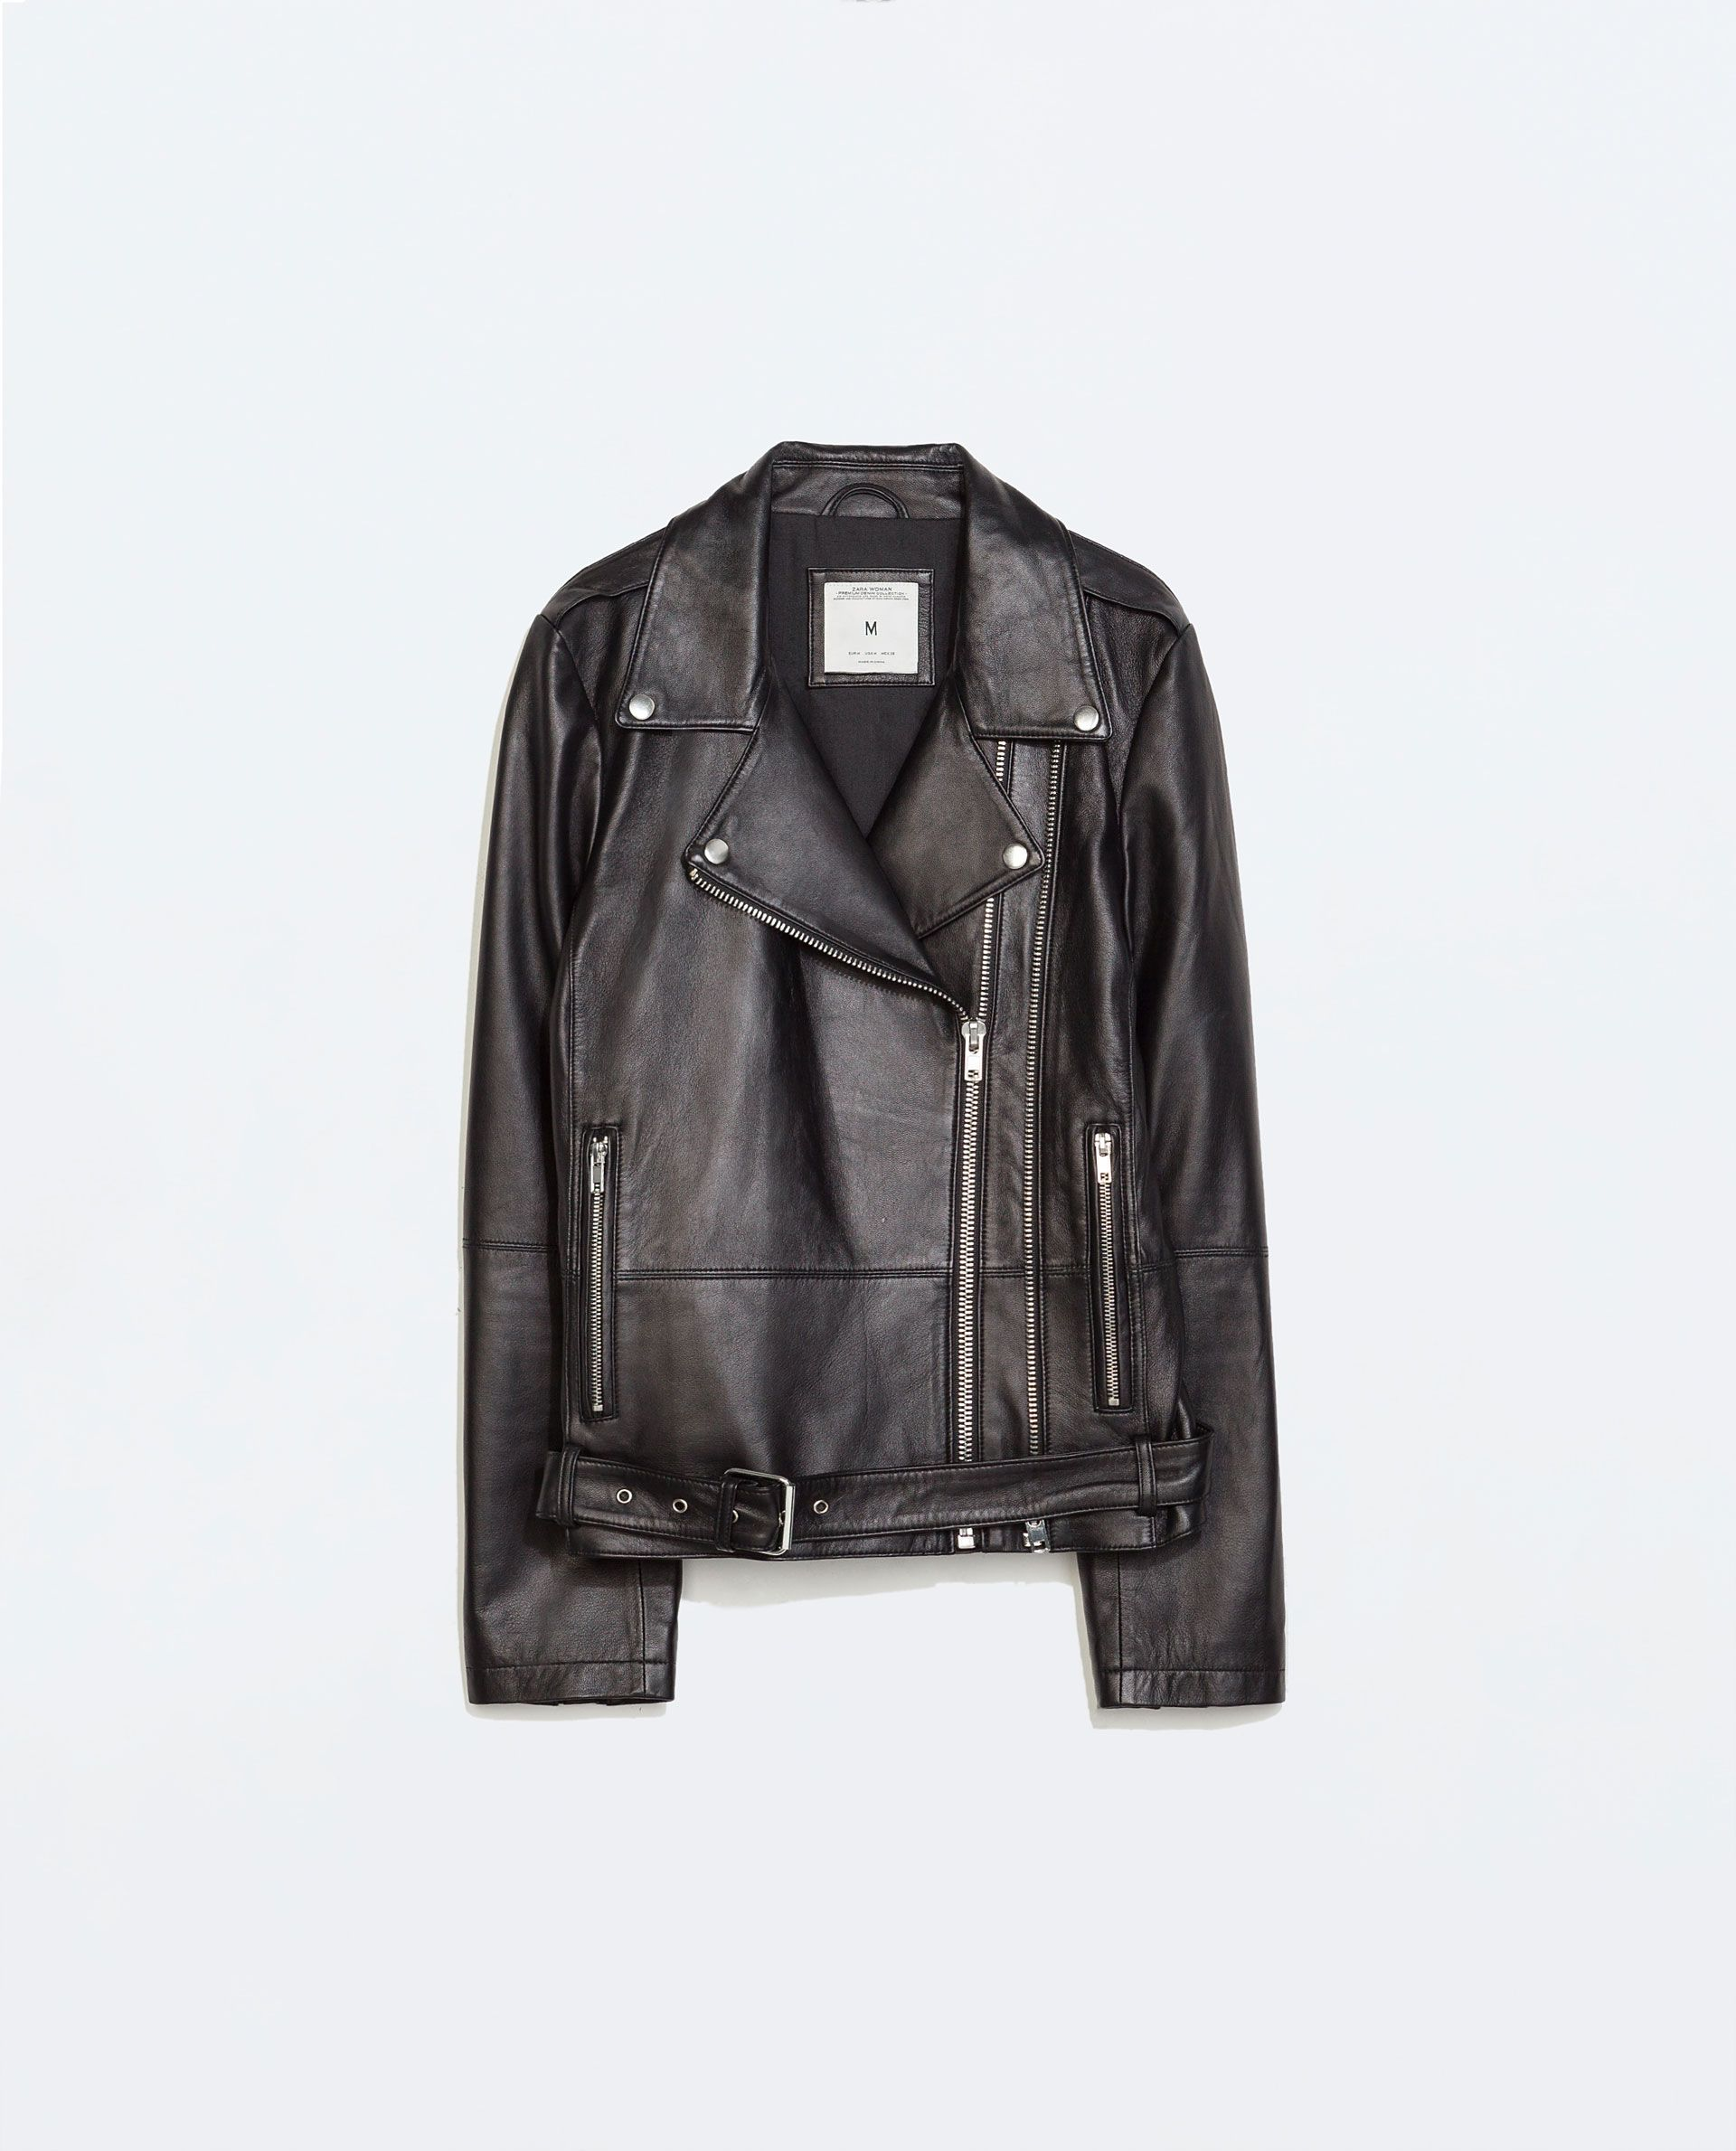 ZARA - COLLECTION SS15 - ZIPPED LEATHER BIKER JACKET